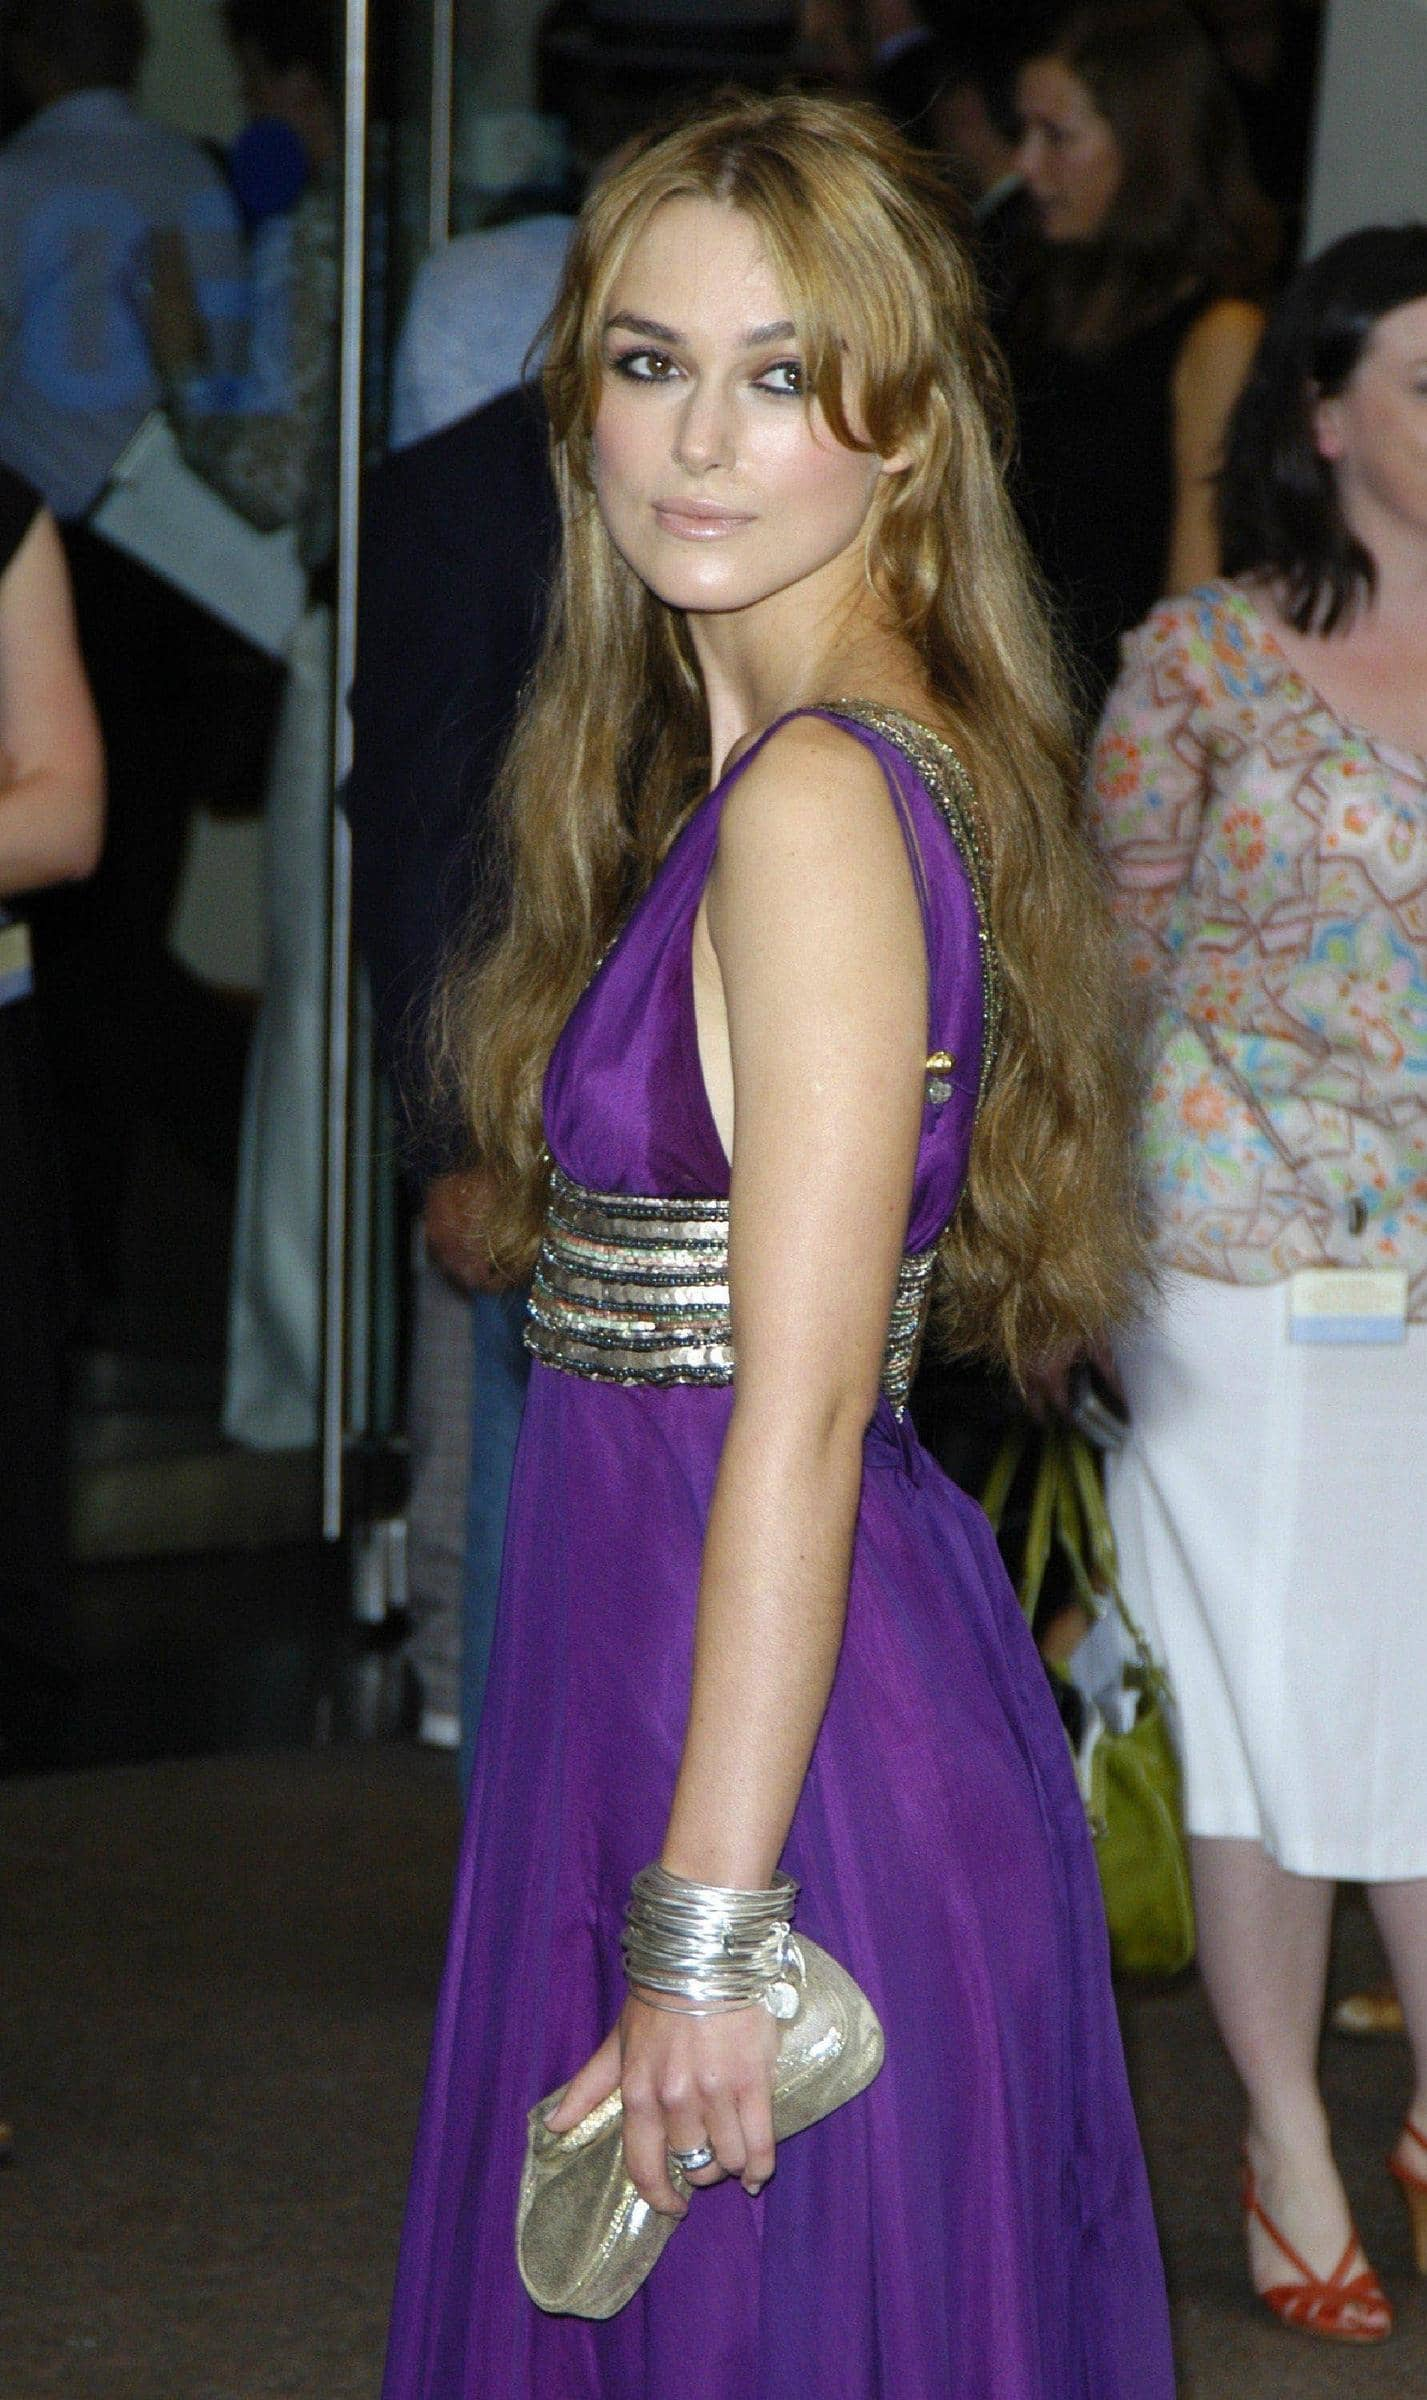 Communication on this topic: Keira Knightley anorexia debate, keira-knightley-anorexia-debate/